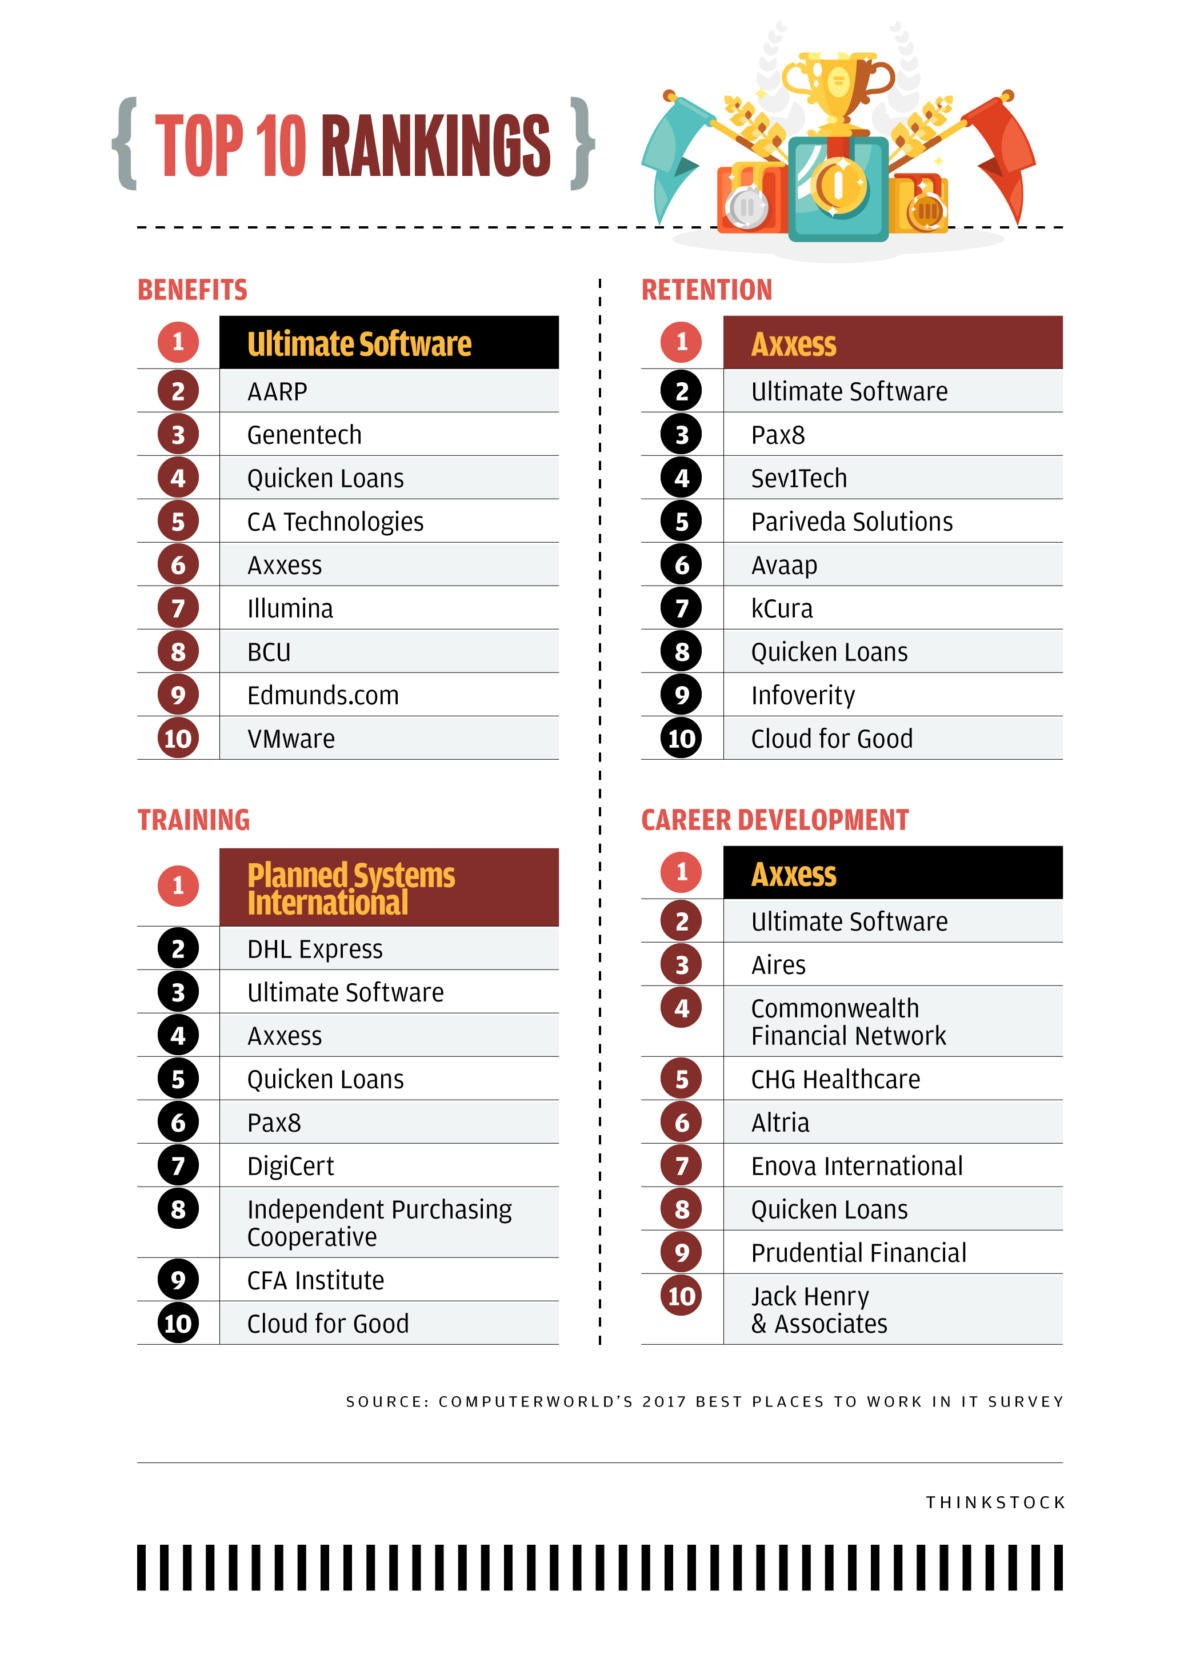 Computerworld's 100 Best Places to Work in IT [2017] - Charts [1] - Top 10 Rankings